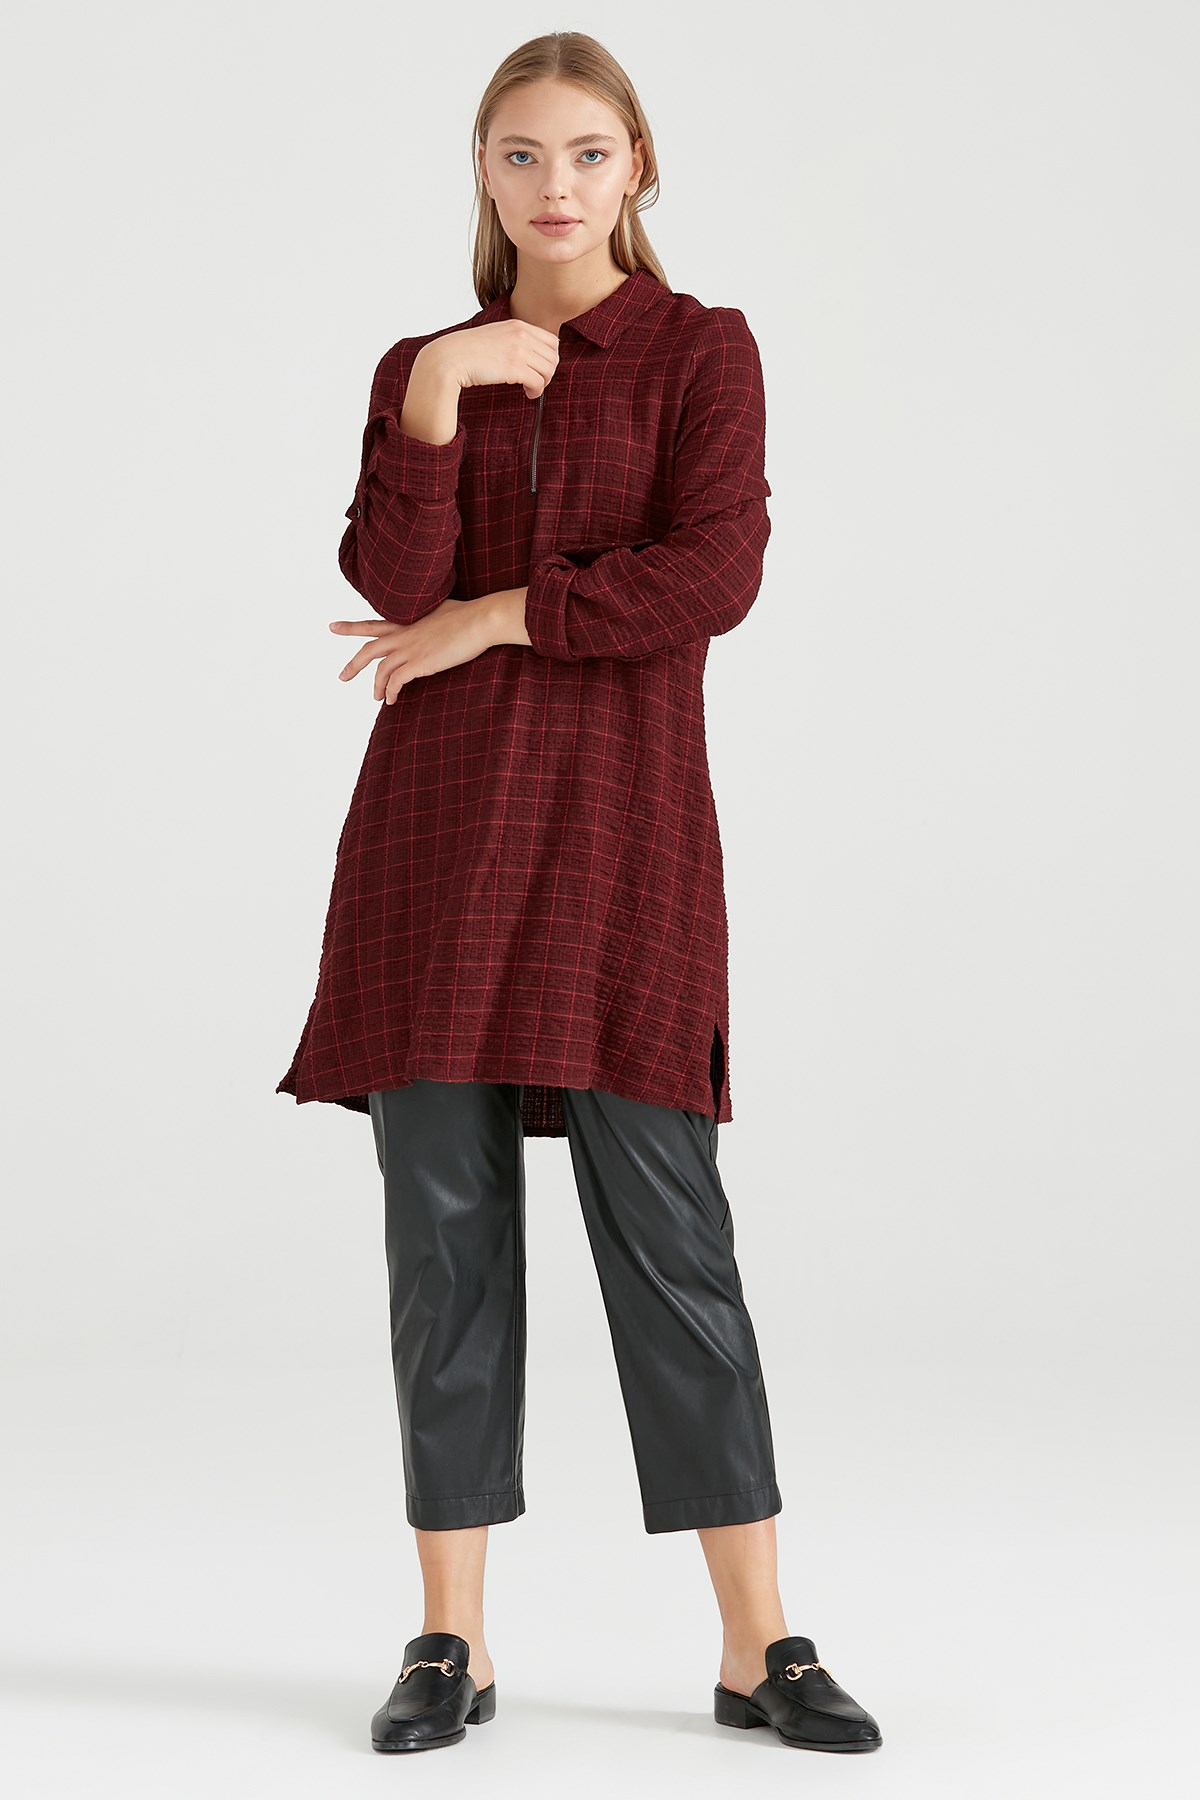 Nihan Tunik Bordo - O5135